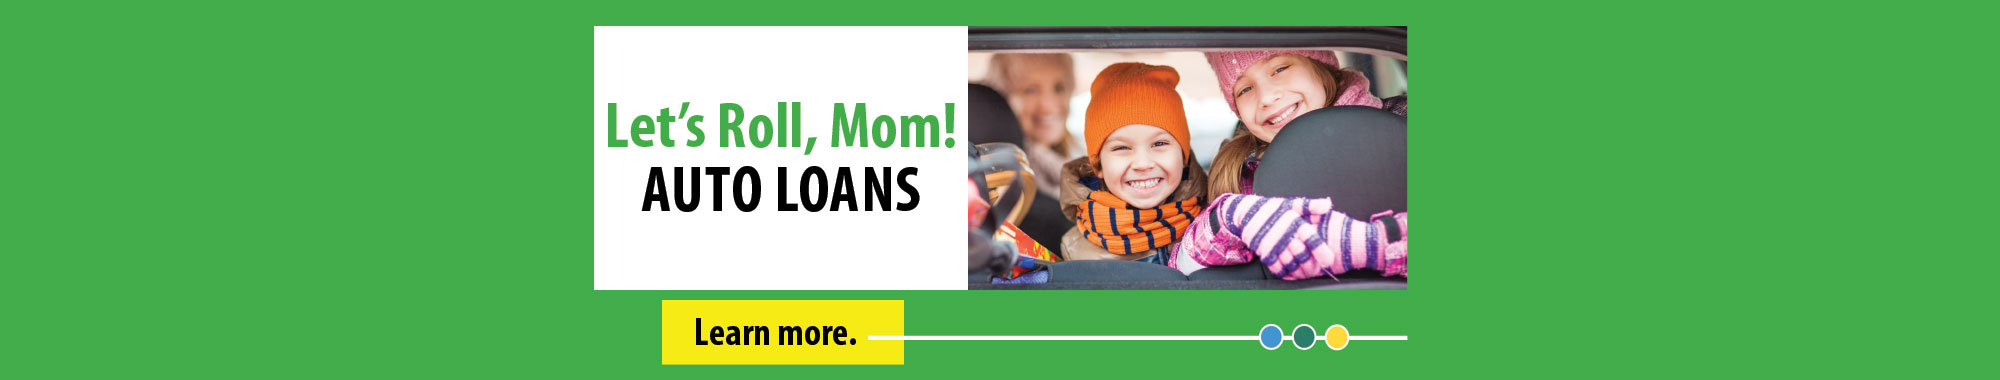 AUTO LOANS - Learn more!